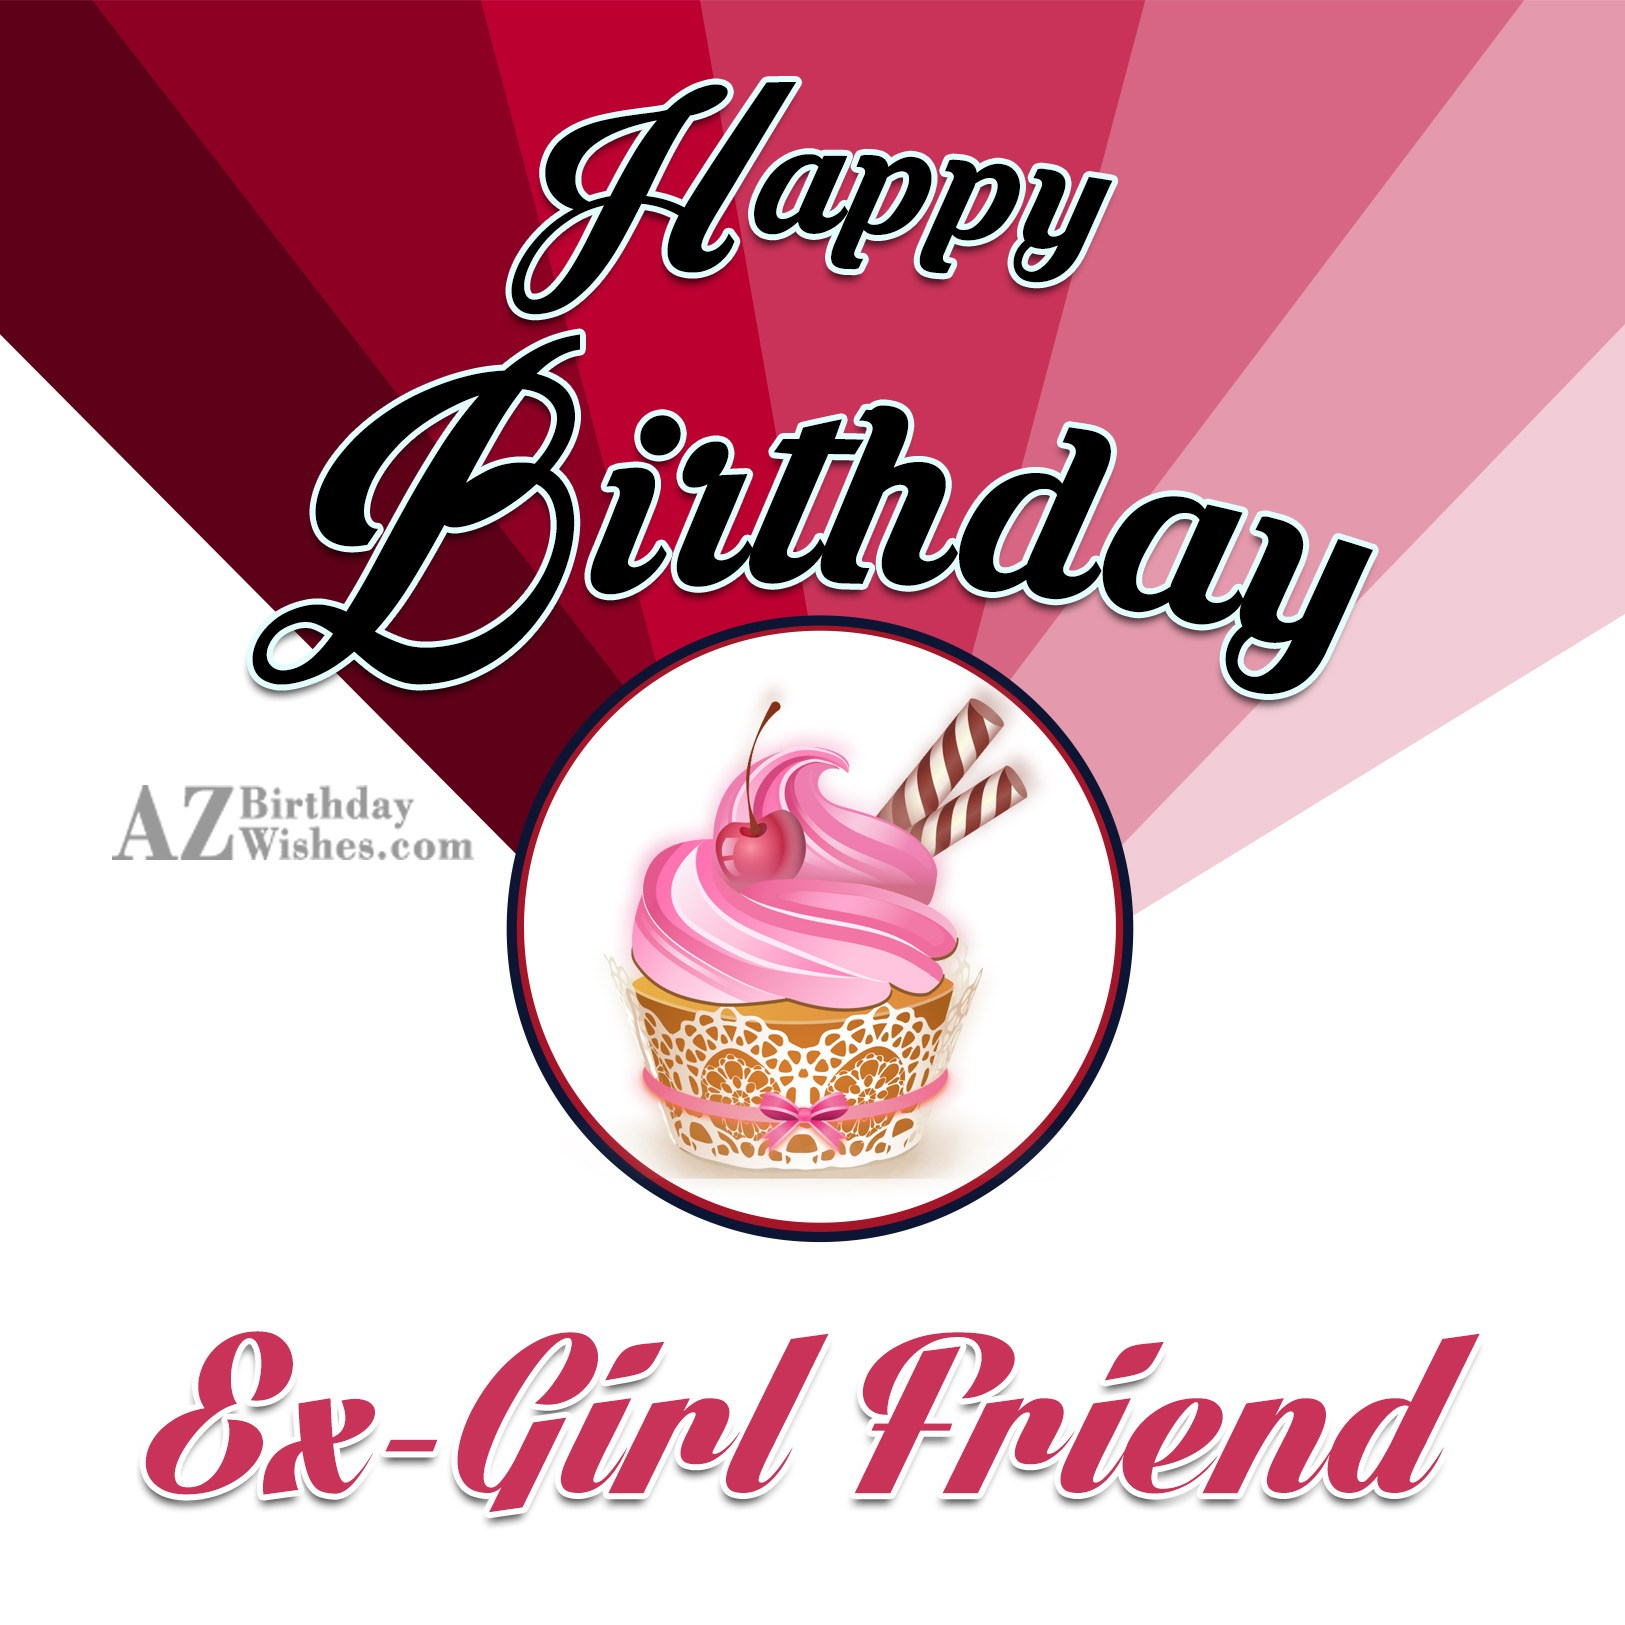 Birthday Wishes for Ex-Boyfriend: Quotes and Messages